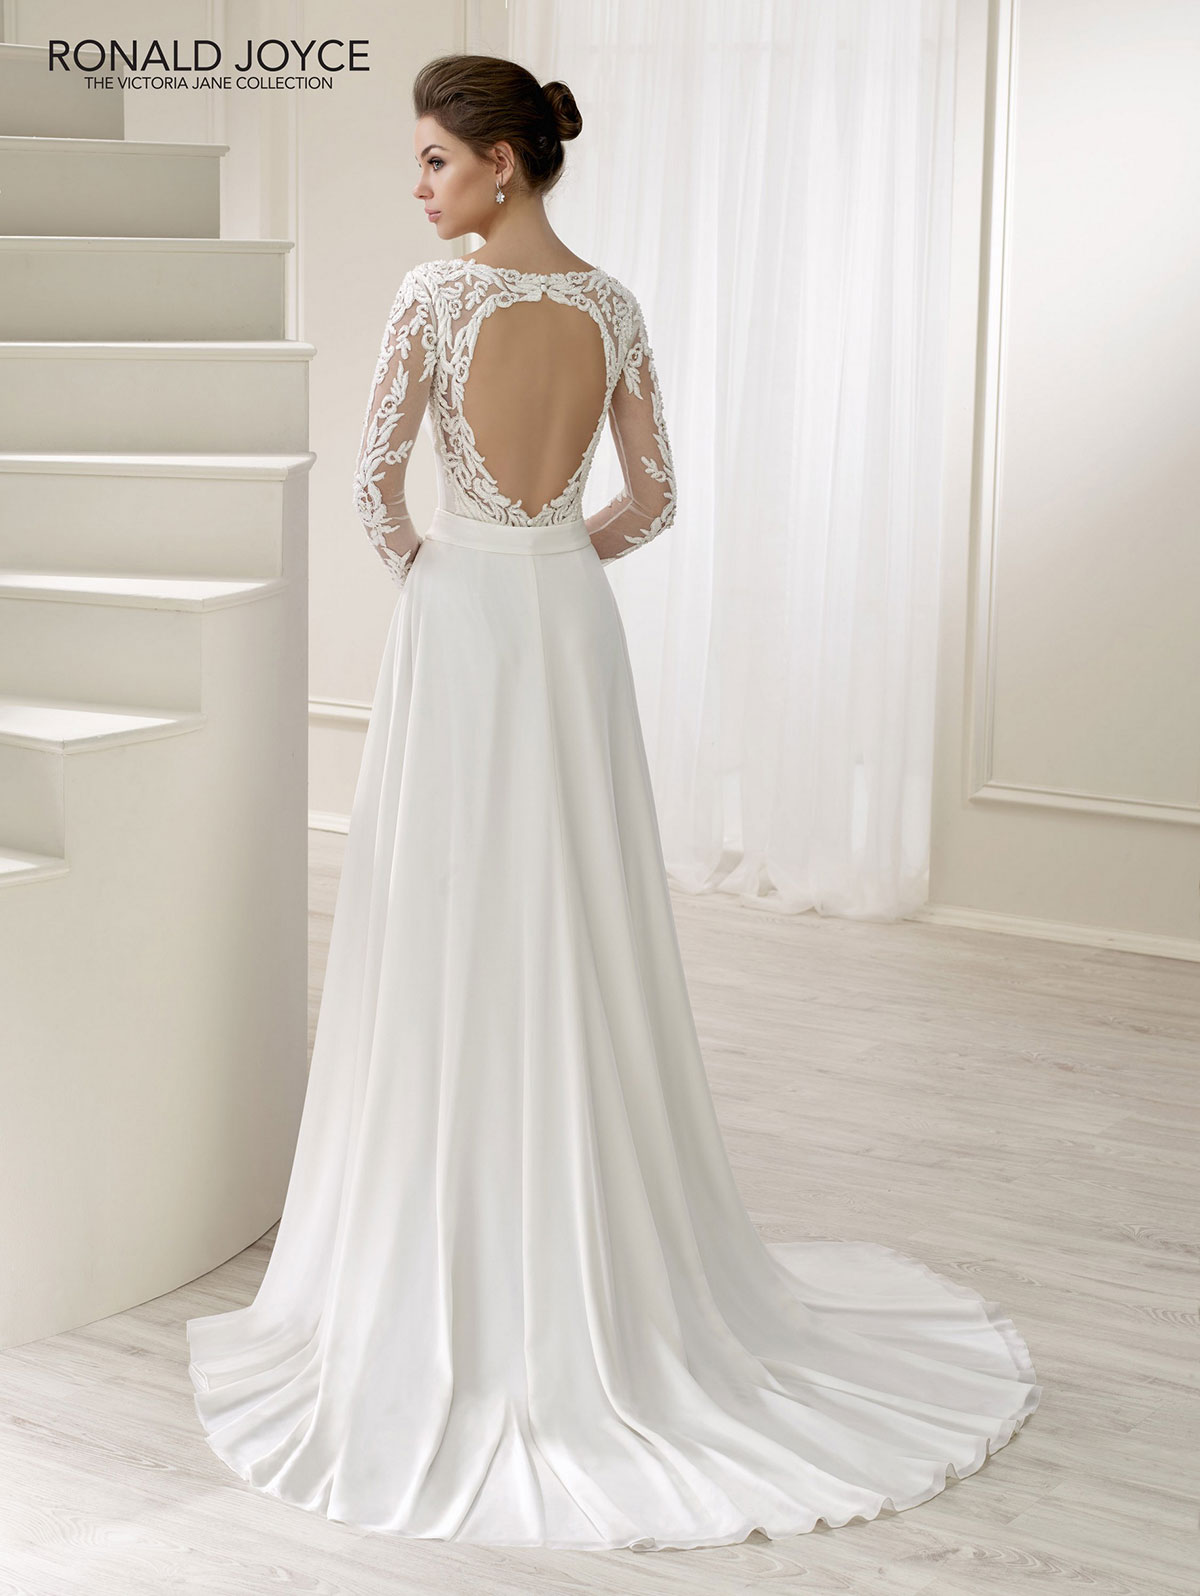 Ronald Joyce - Lea Reverse Wedding Gown Leeds